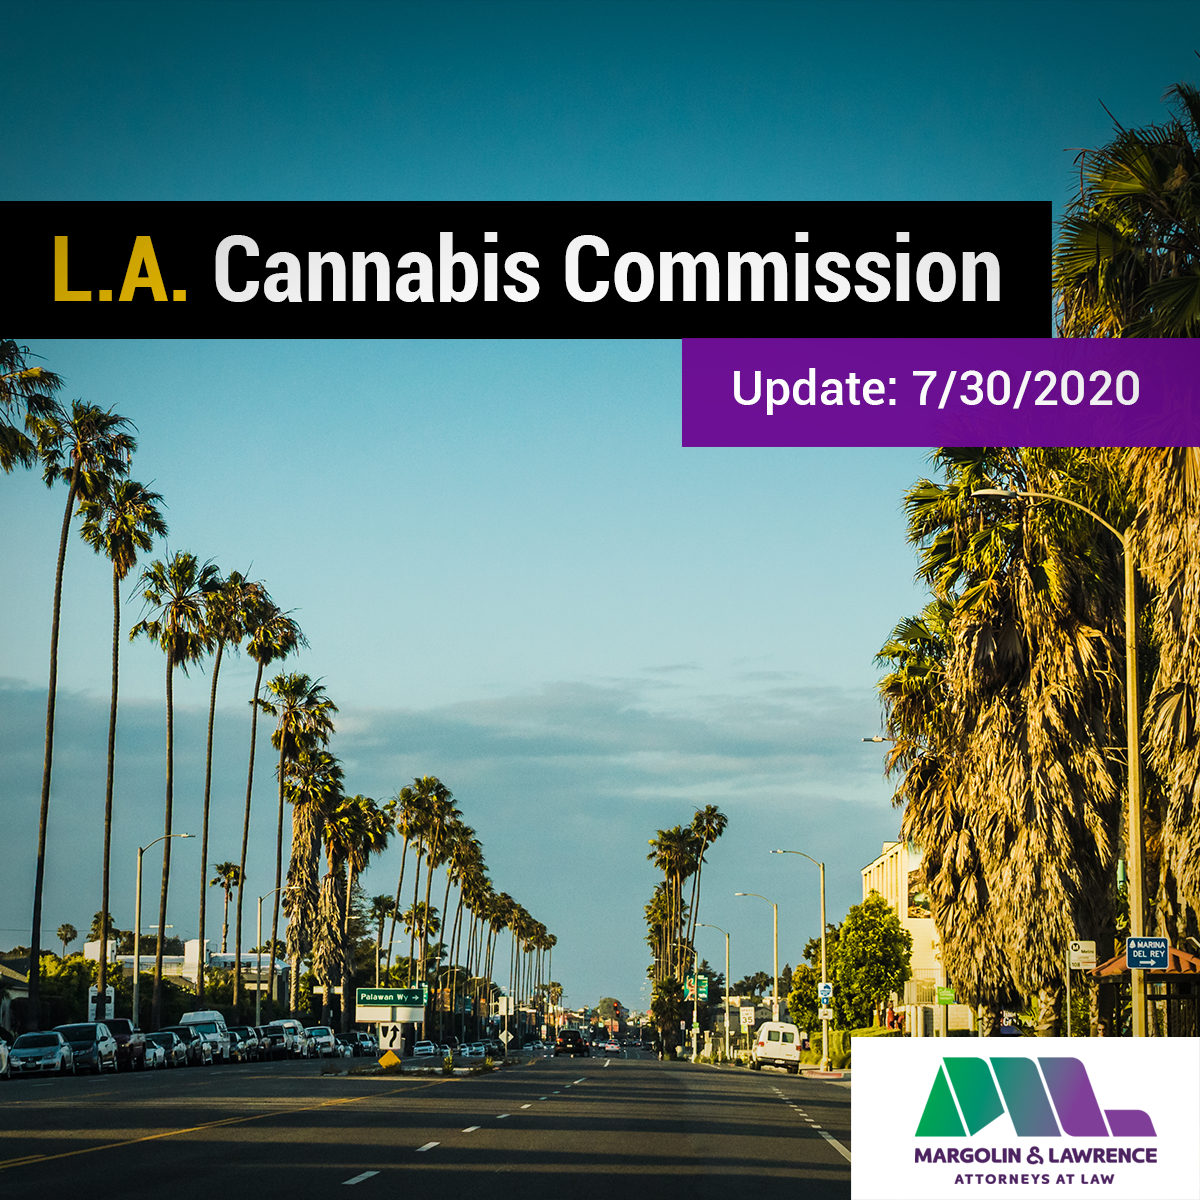 L.A. Cannabis Commission Update: 7/30/2020